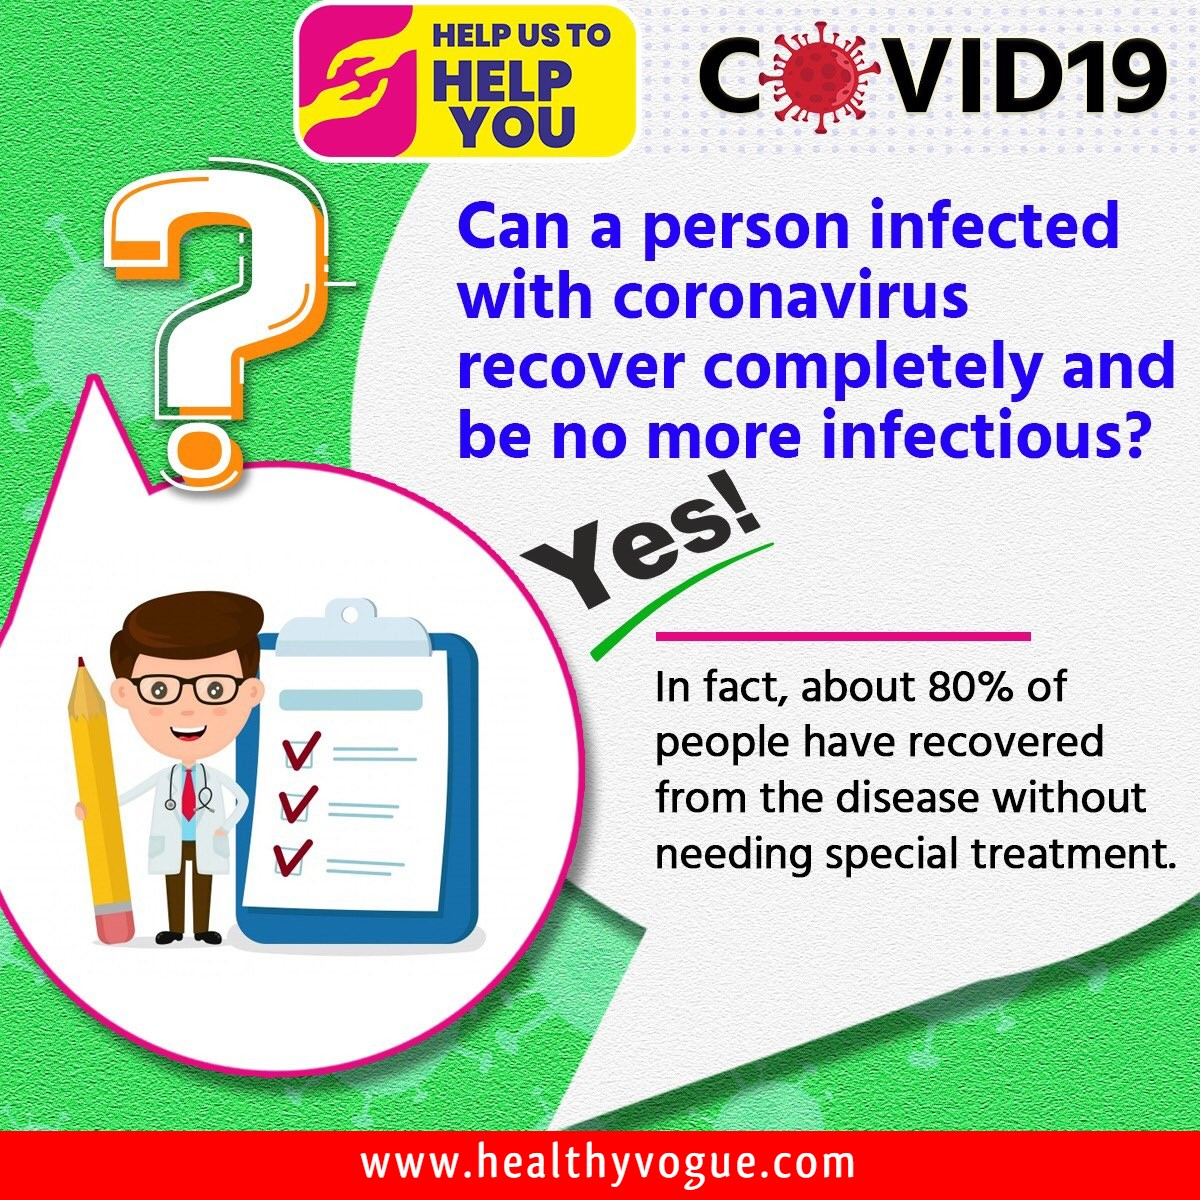 Can a person infected with coronavirus recover completely and be no more infectious?